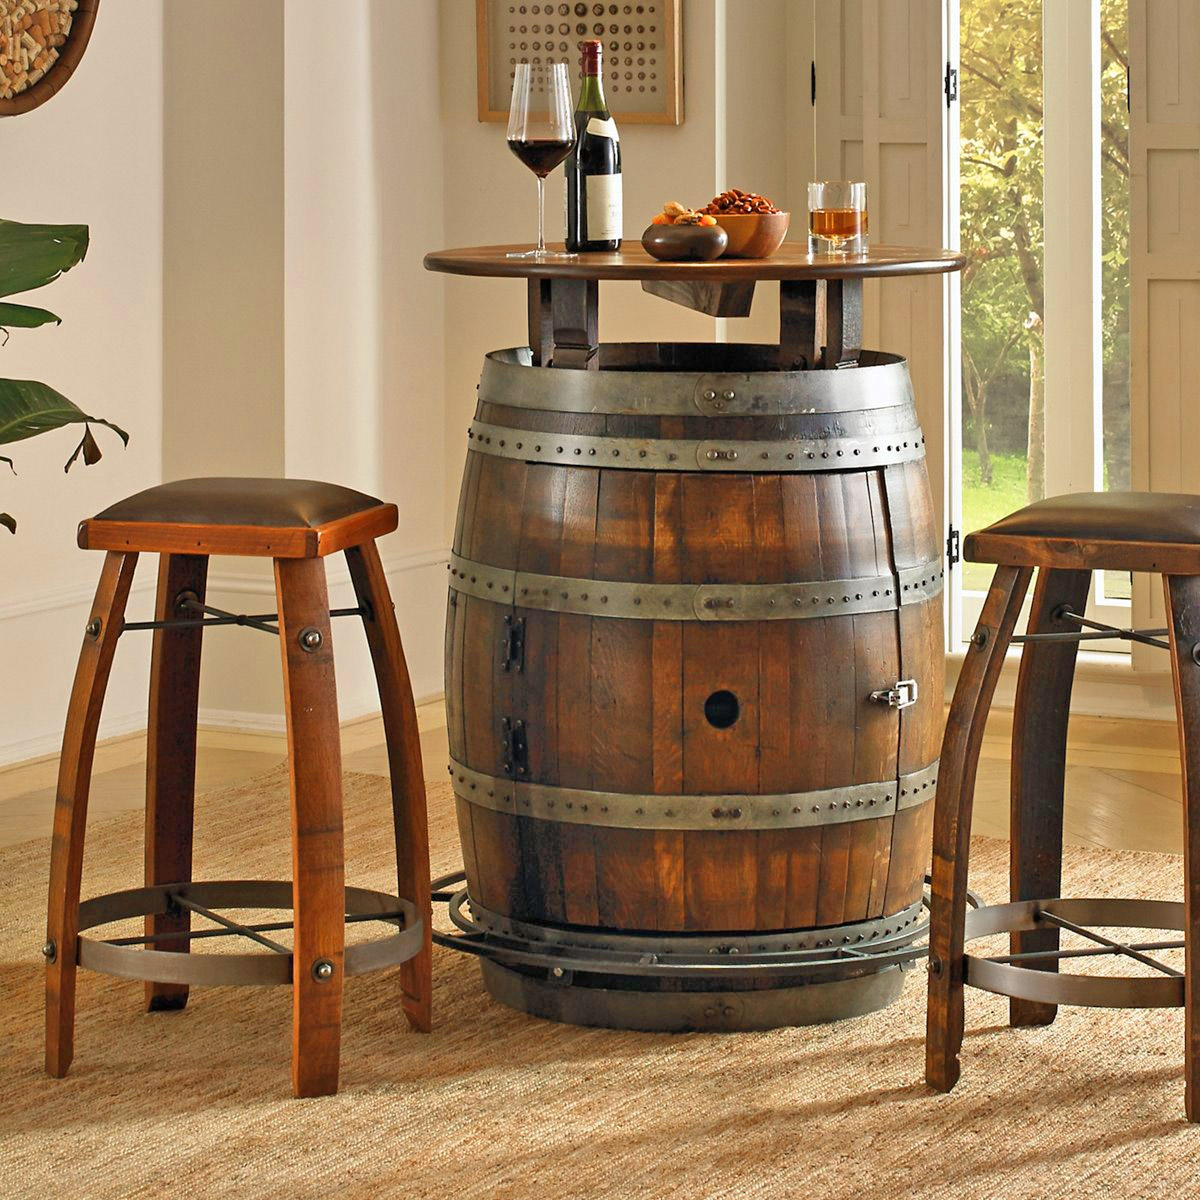 This Ultimate Wine Barrel Table Has A Hidden Storage Area